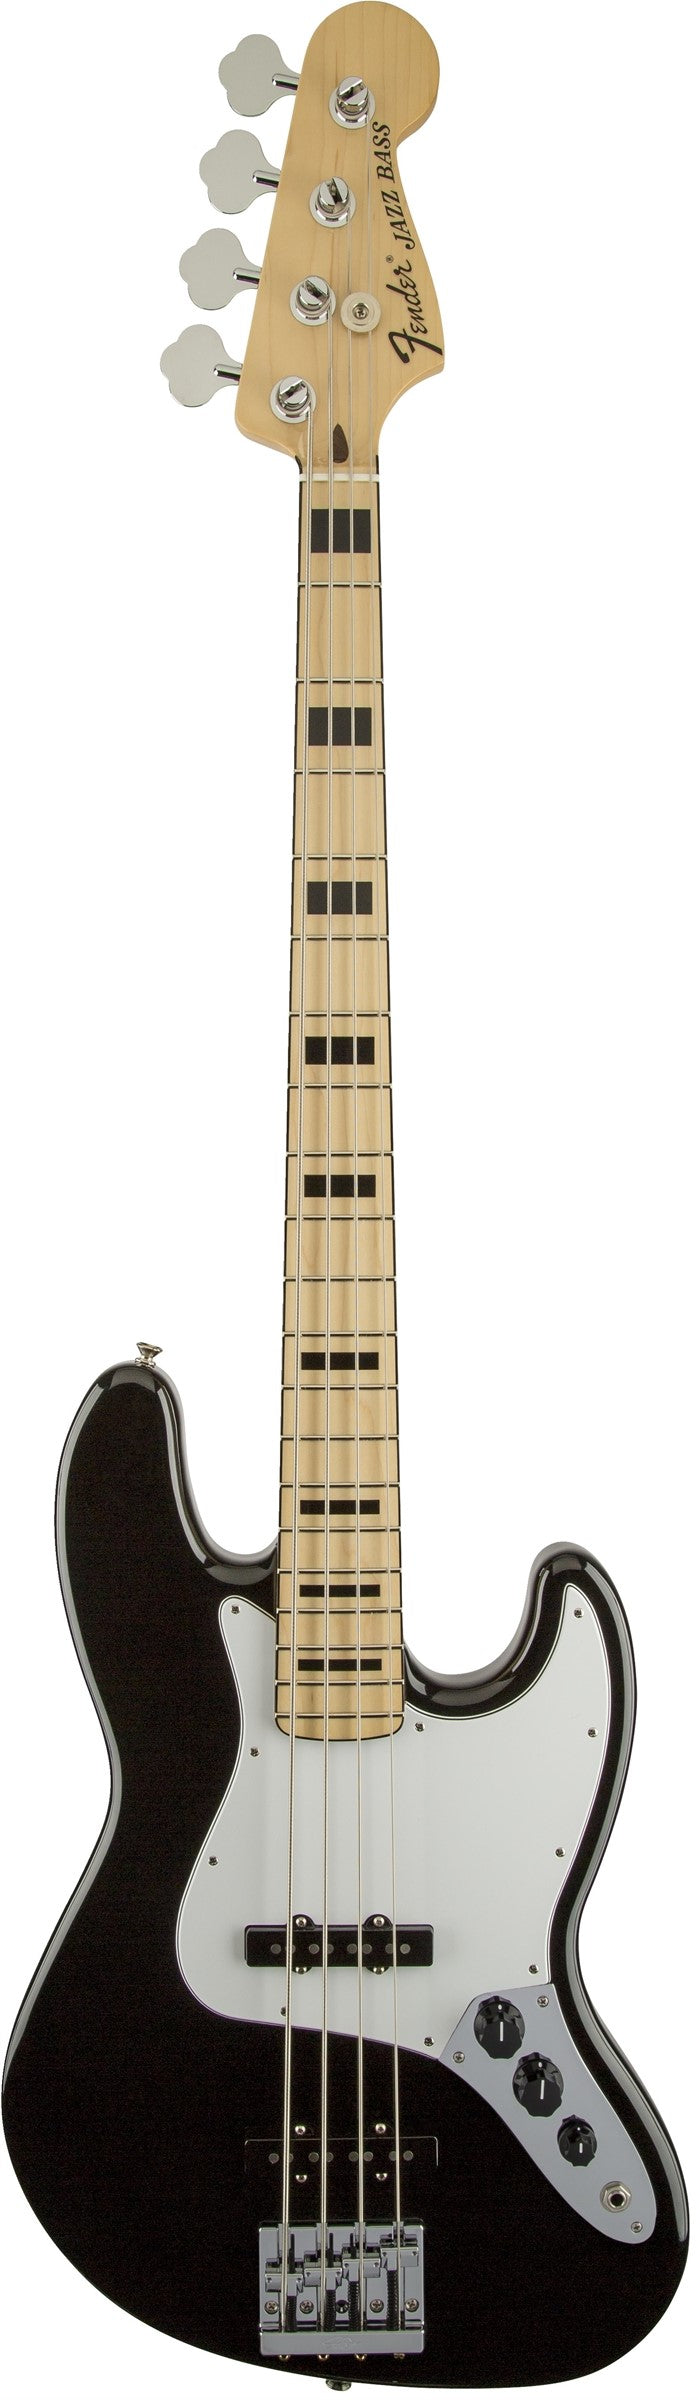 Fender Geddy Lee Jazz Bass, Maple Fingerboard, Black